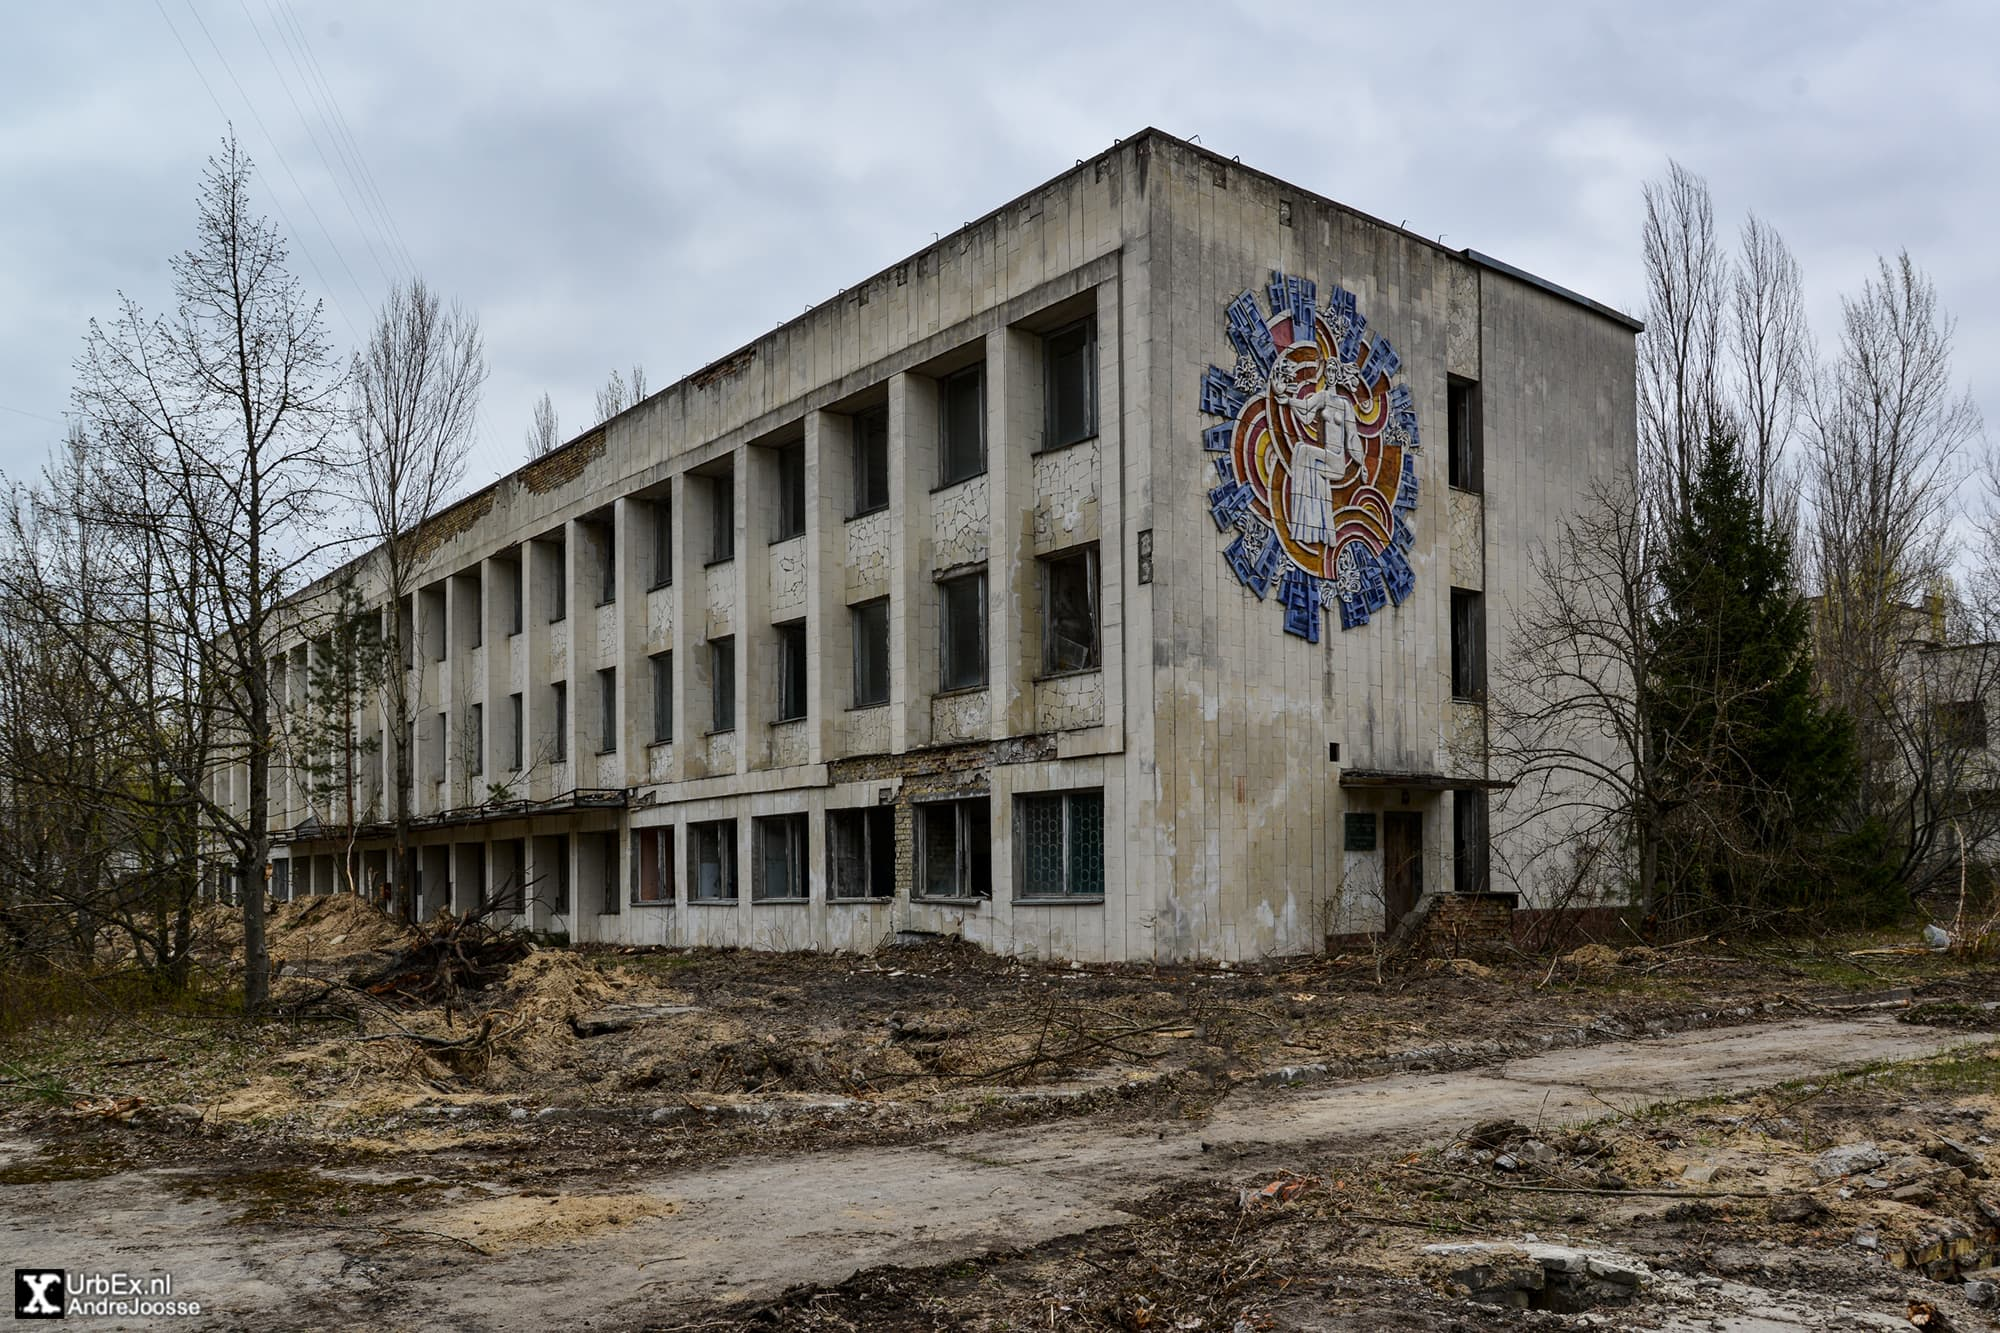 Pripyat Retail: The Post Office